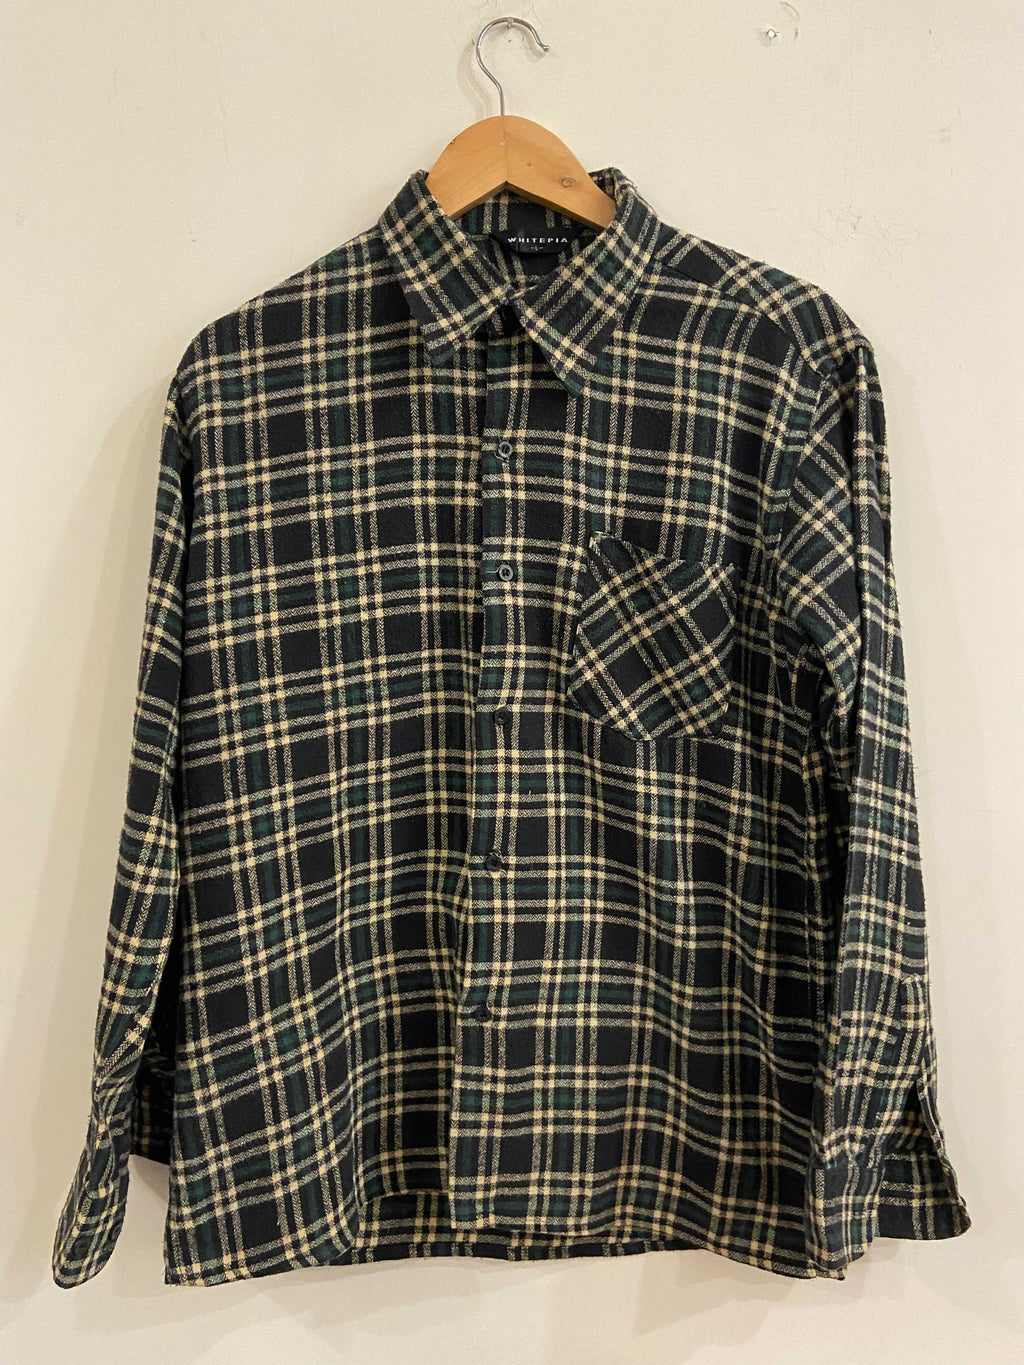 Whitepia Green and White Flannel Shirt